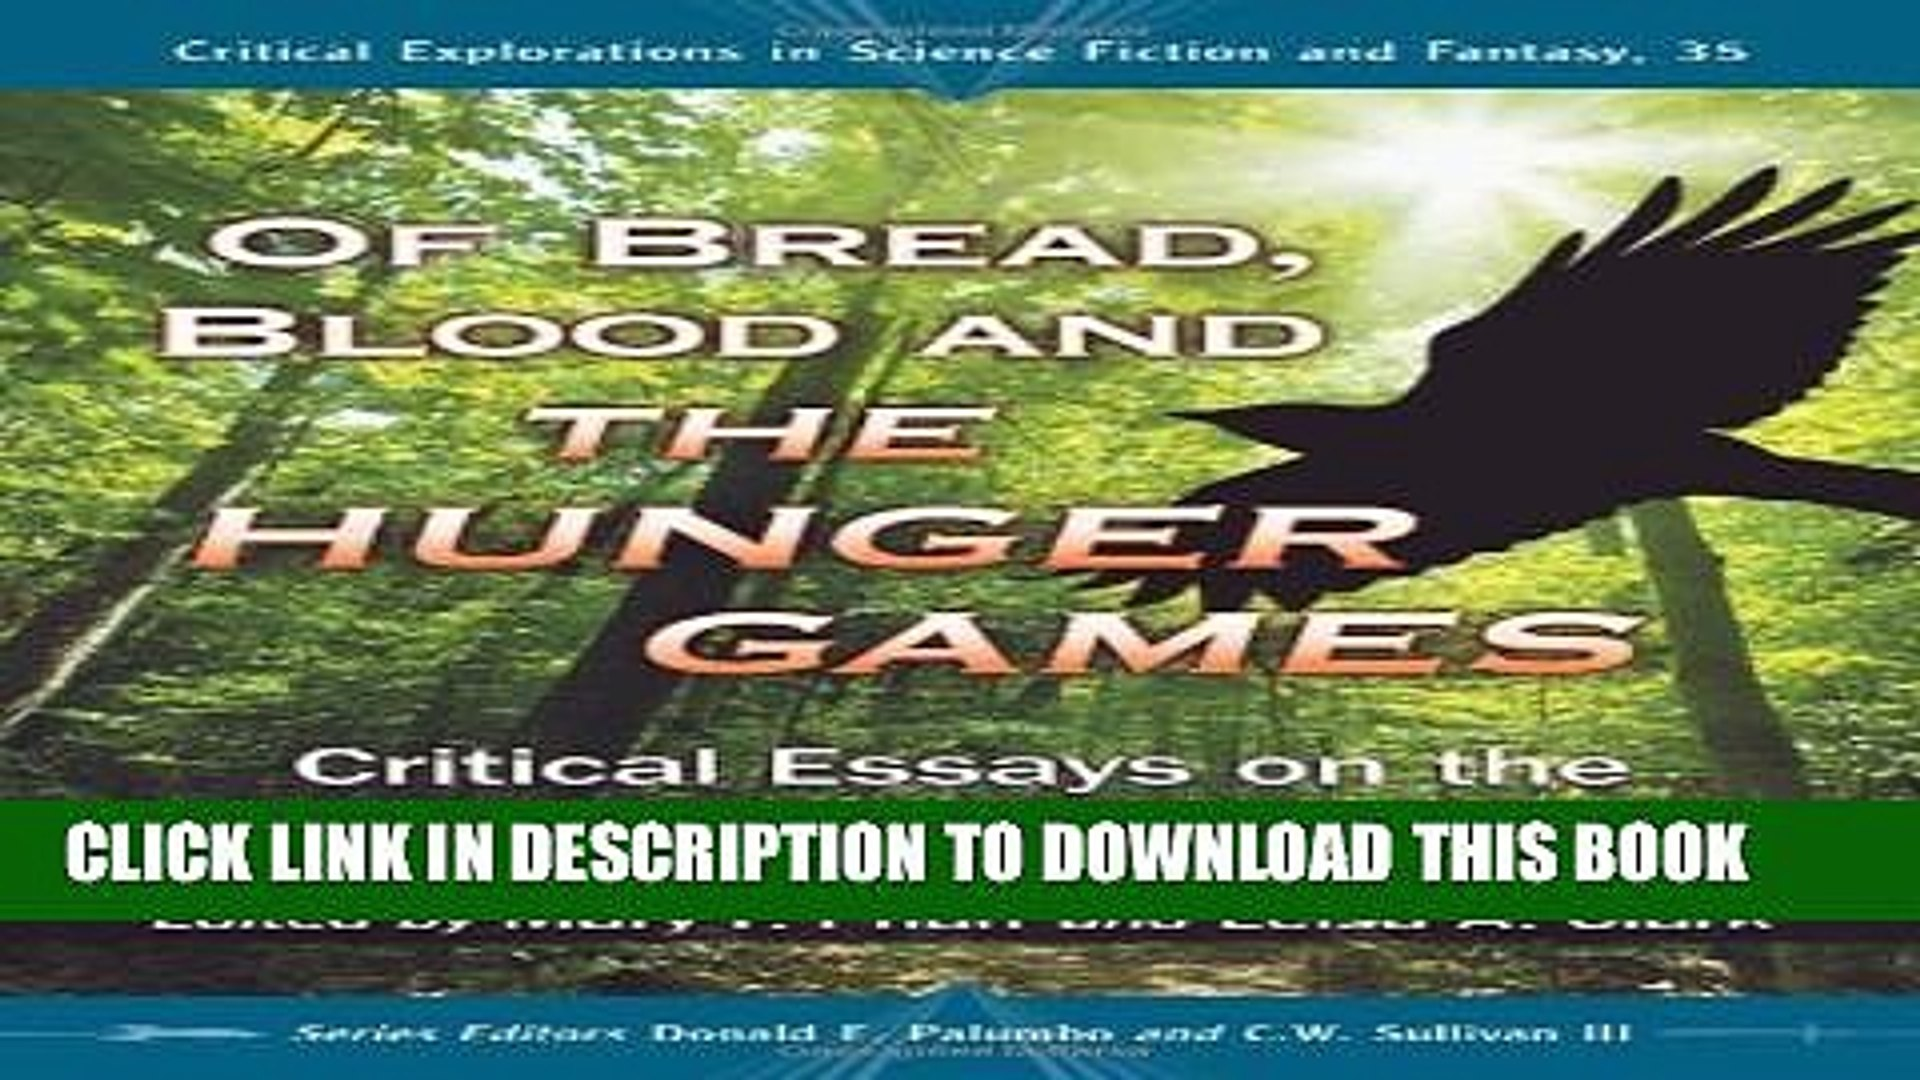 of bread blood and the hunger games critical essays on the suzanne collins